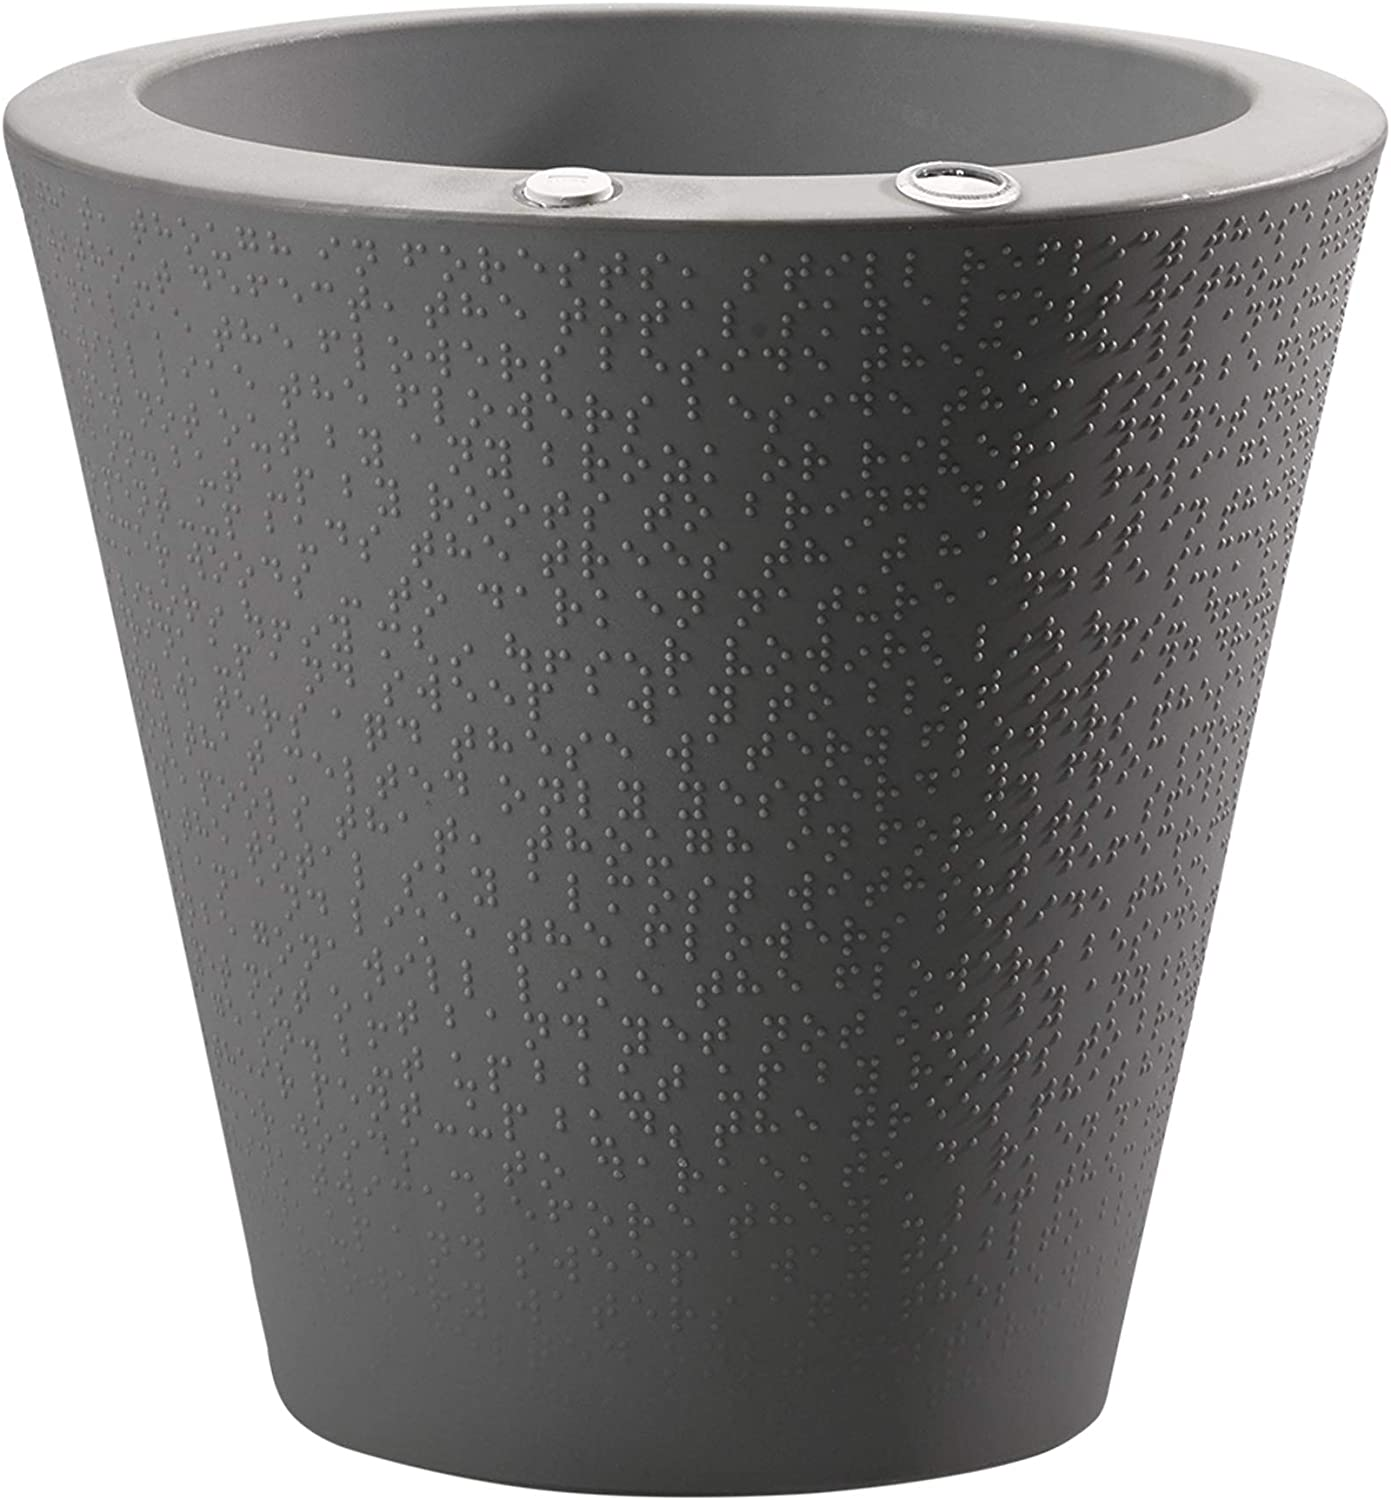 Crescent Garden Dot TruDrop Planter, Self-Watering Plant Pot, 16-Inch (Slate)